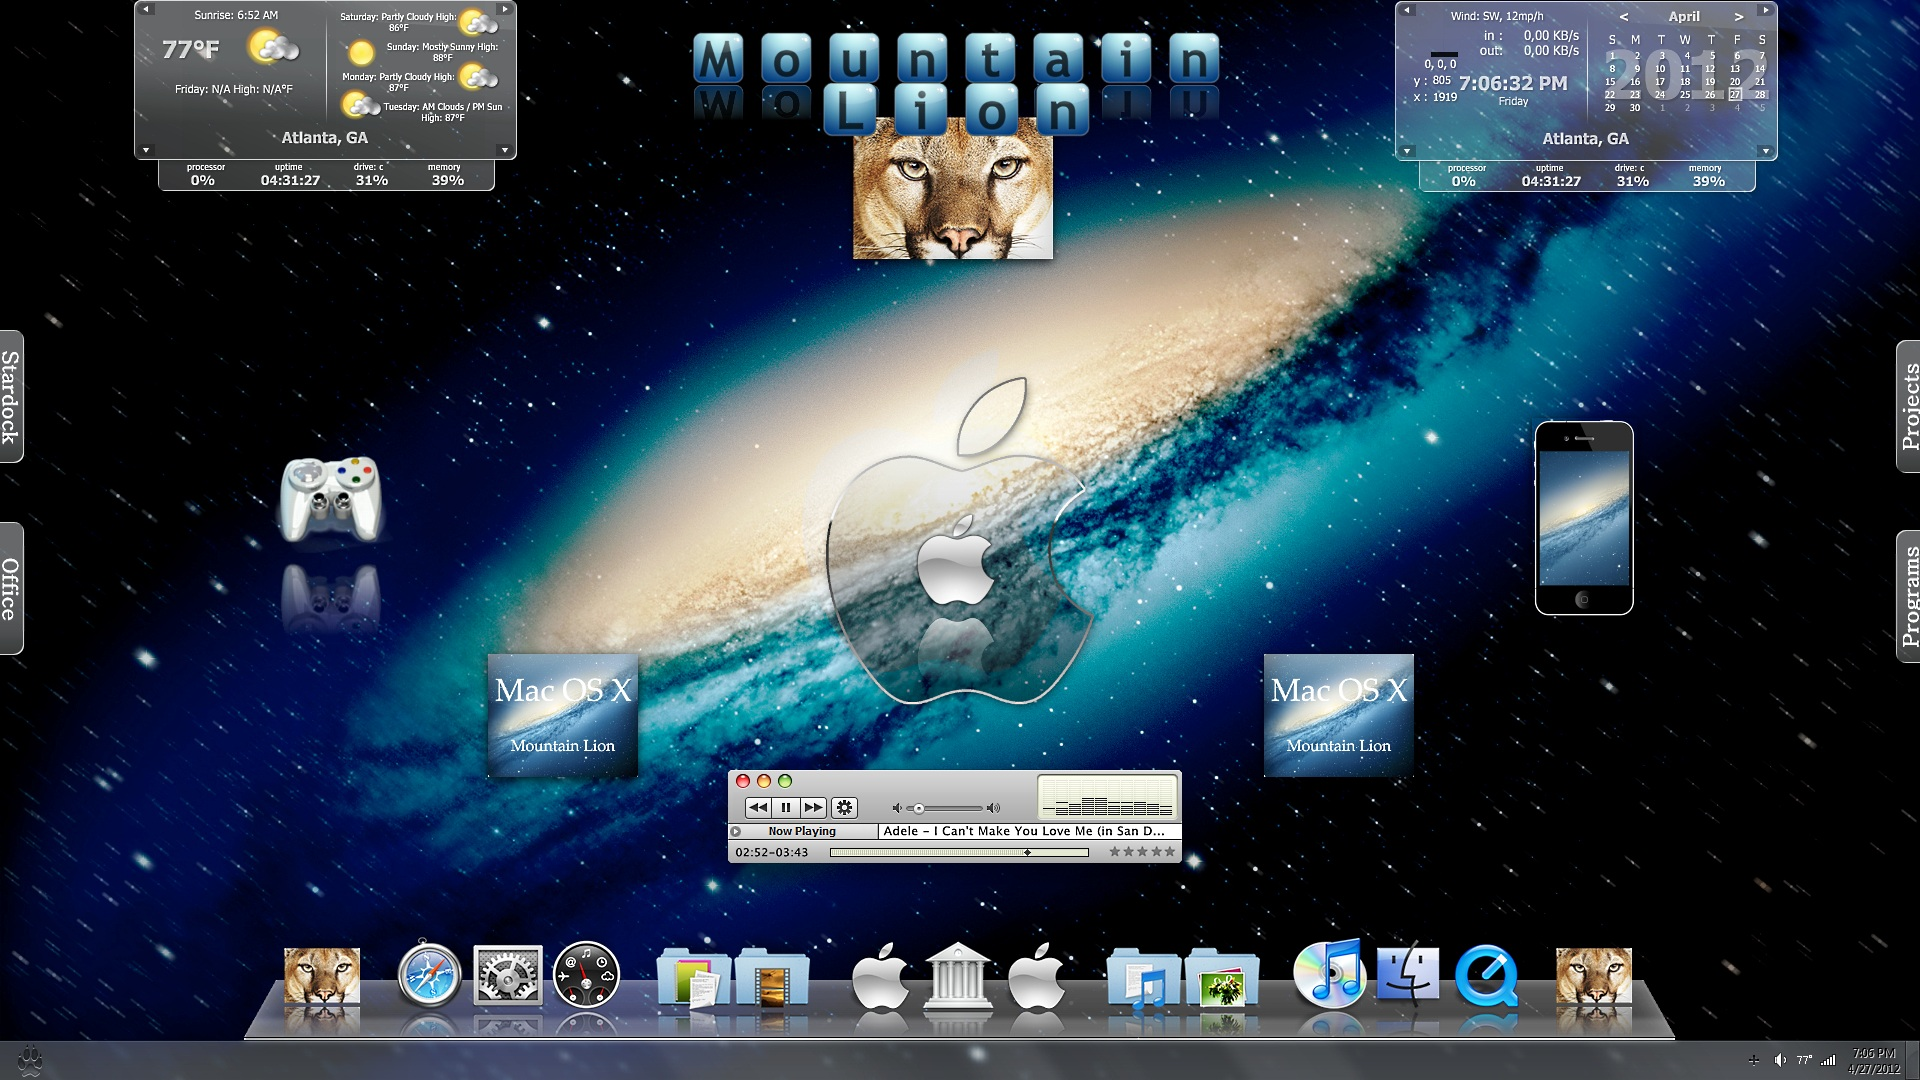 Mac OS X Mtn Lion 2